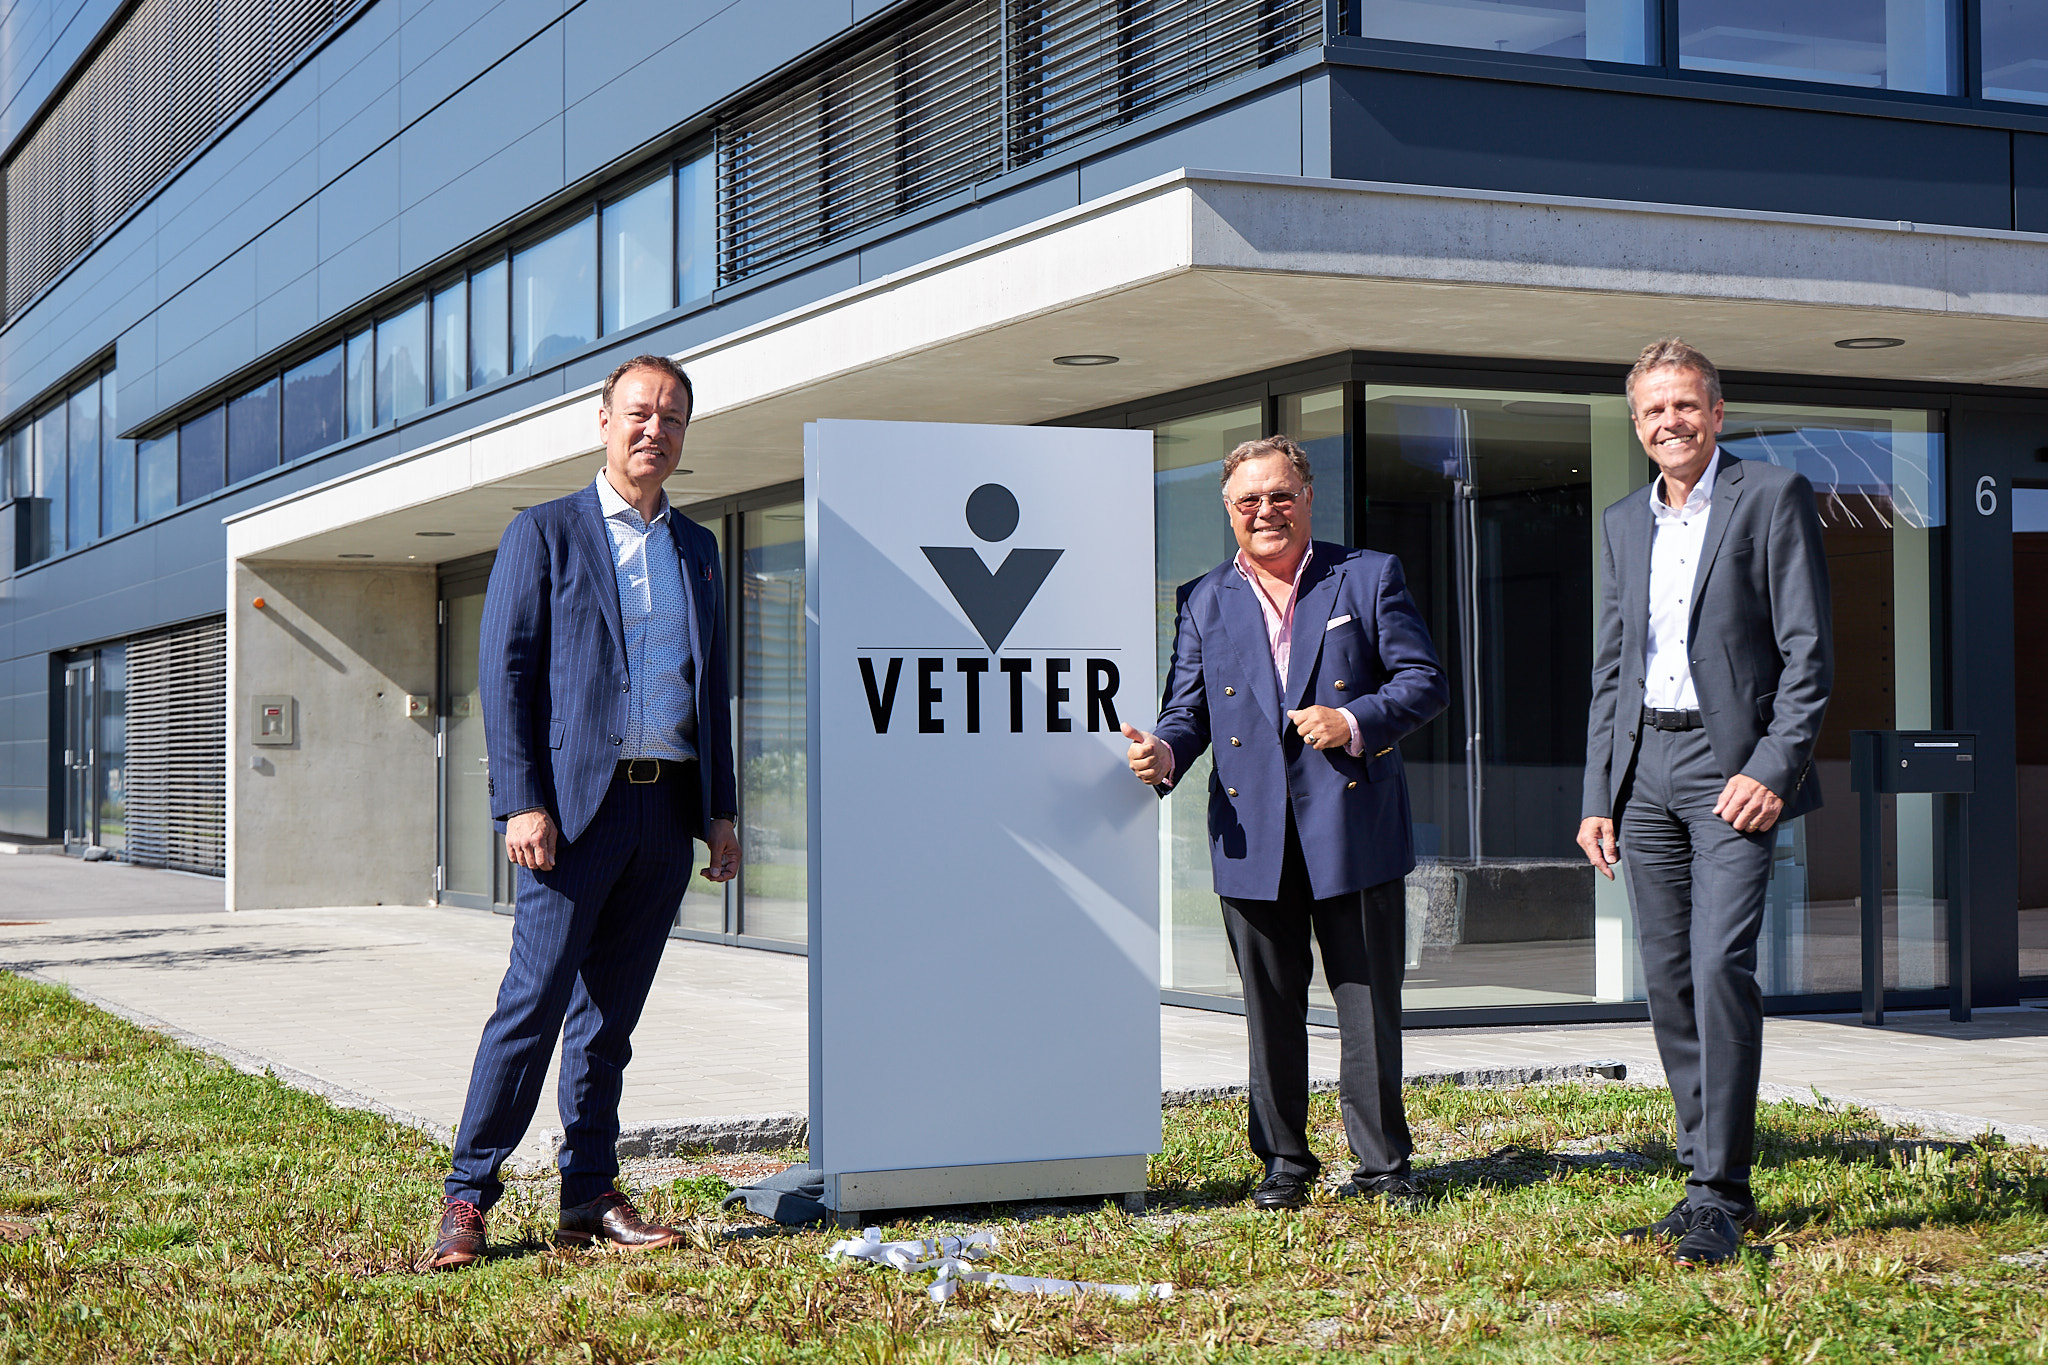 Vetterfurther expands its Development Servicewith new site in Austria _Pic 2